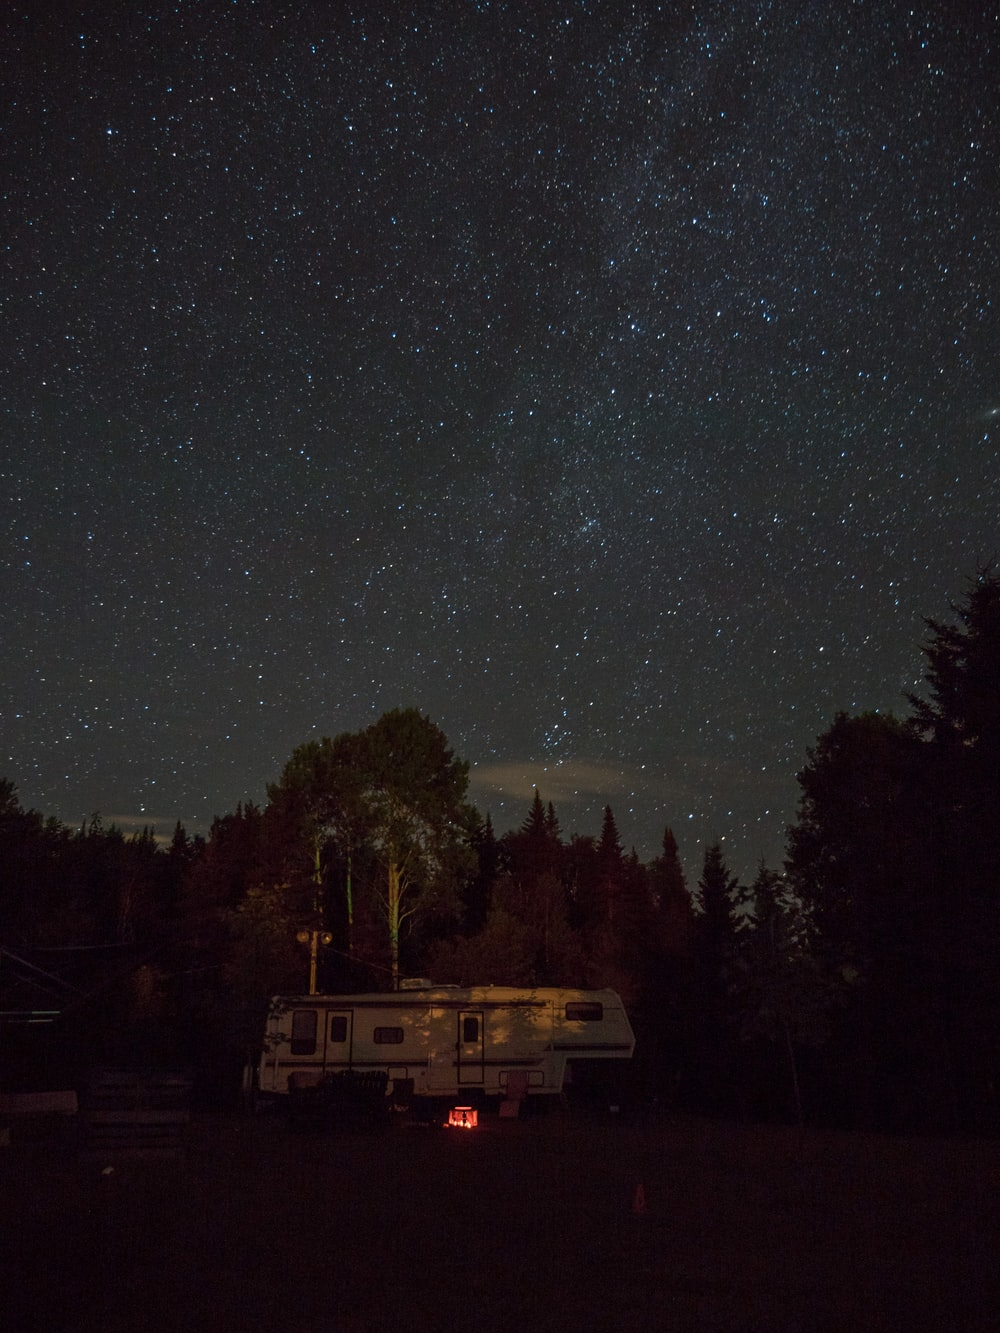 white RV trailer surrounded by trees during nighttime